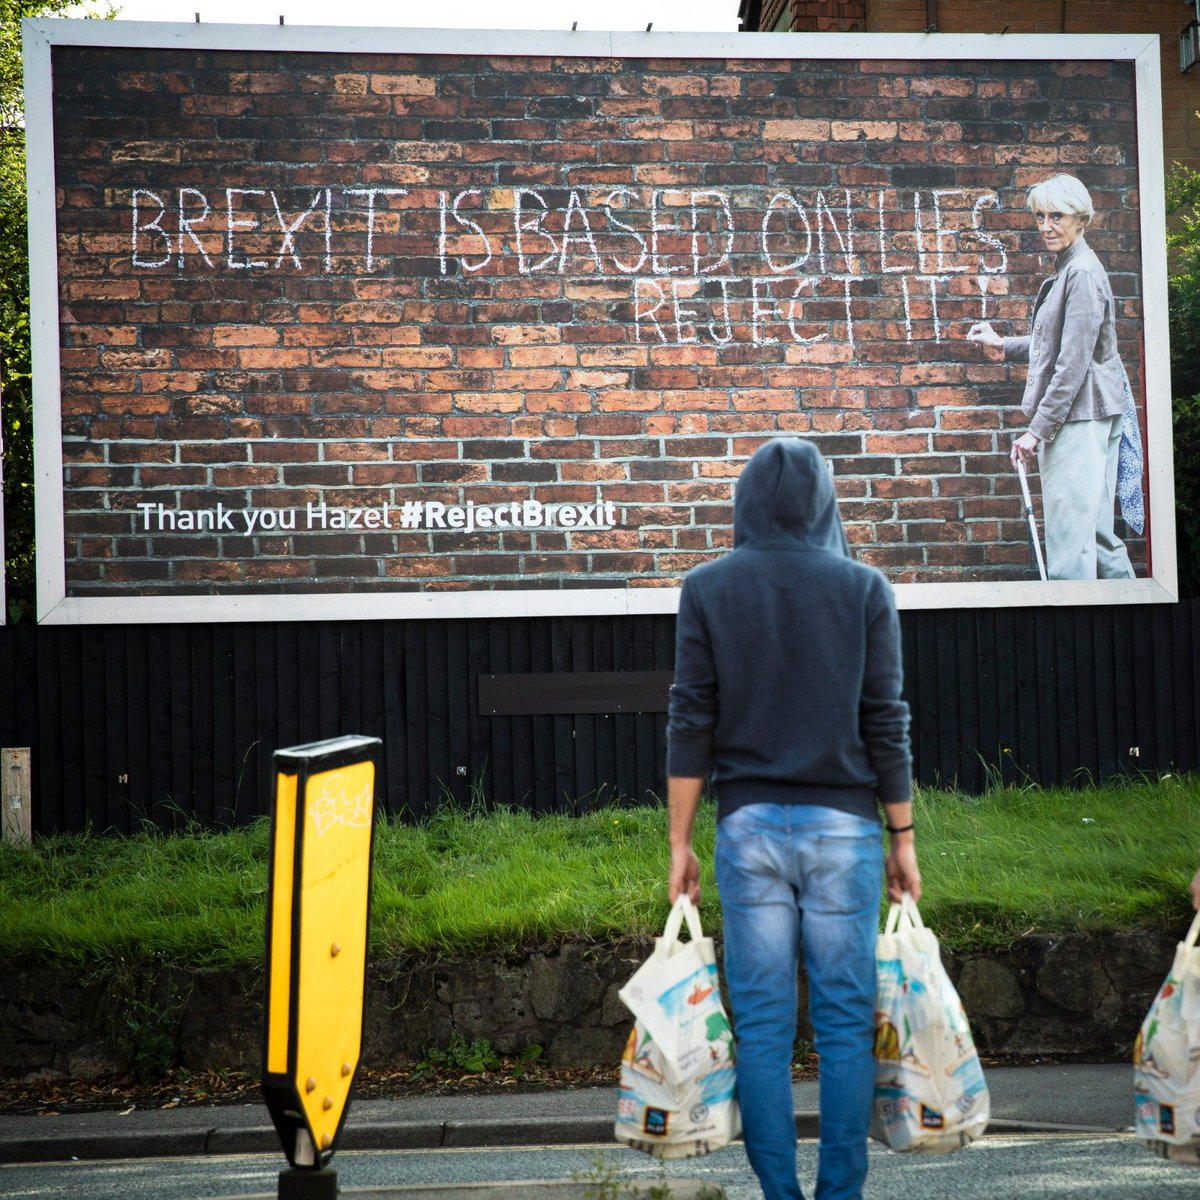 When we read the story about Hazel Jones anonymously chalking graffiti for her grandkids metro.co.uk/2019/08/10/pen… we were moved, inspired and motivated. If you too #RejectBrexit now's the time to take a stand. Thank you Hazel x (location: Coventry)